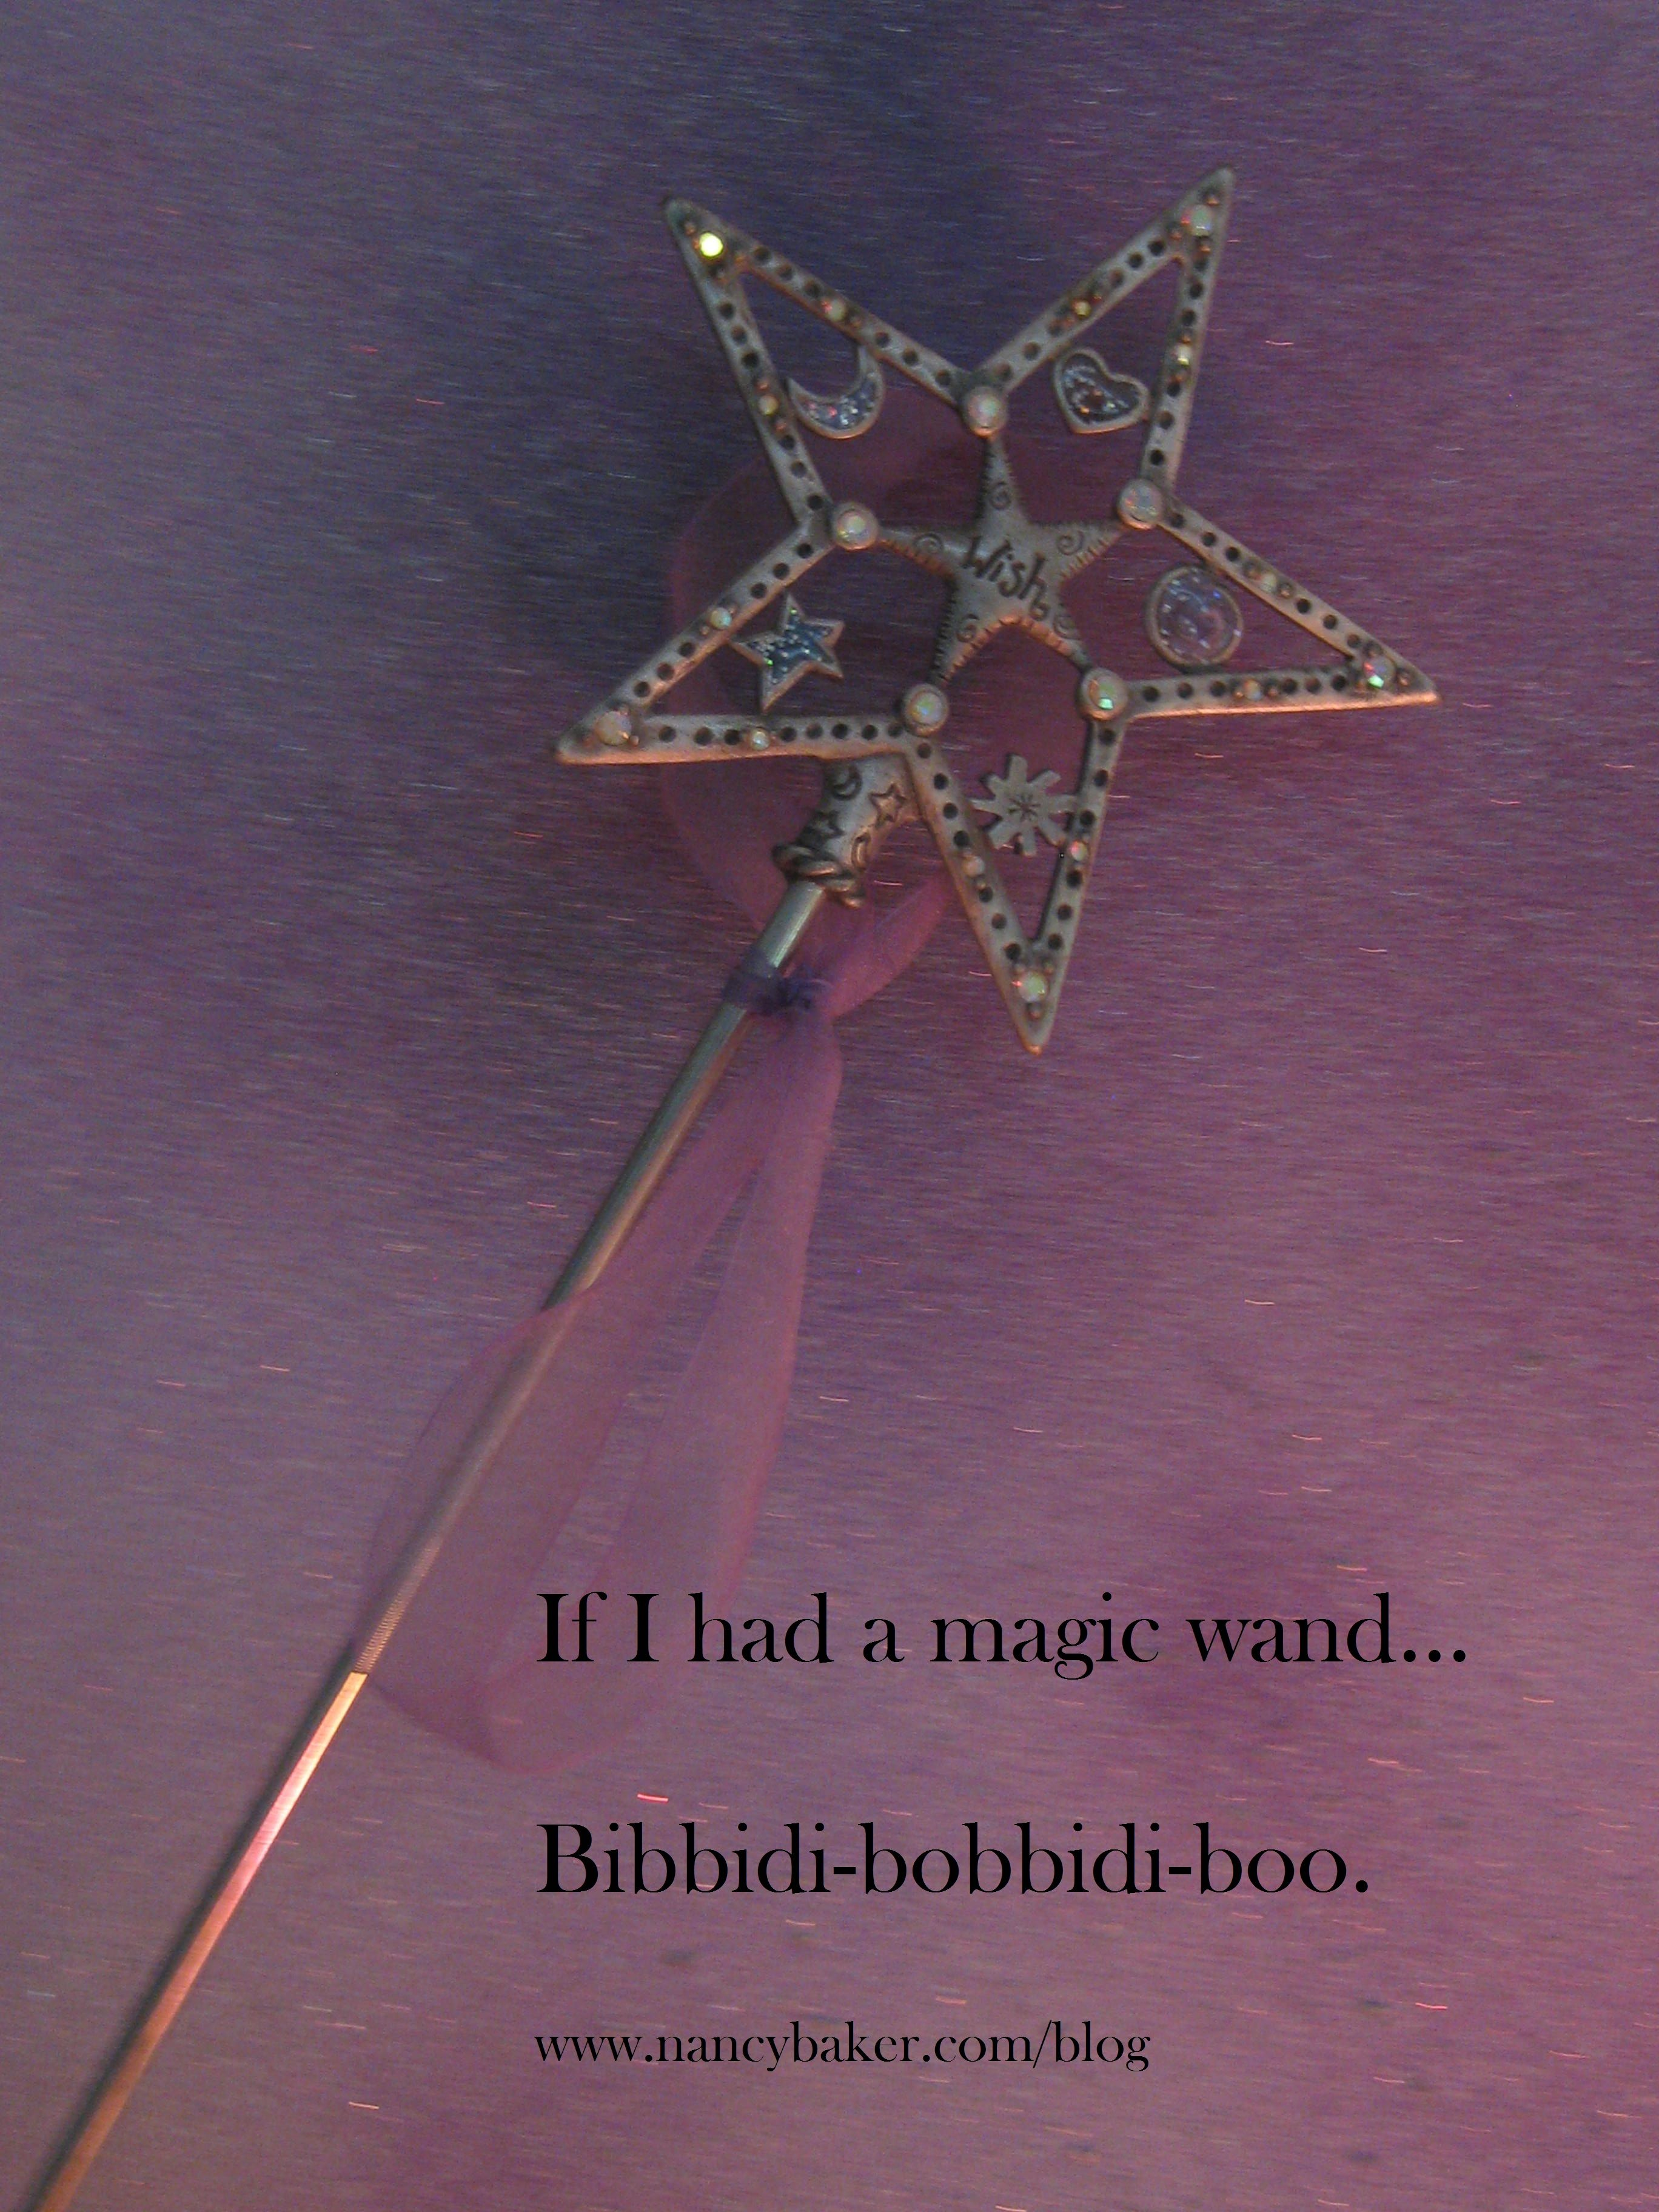 What would you do if you had a magic wand?